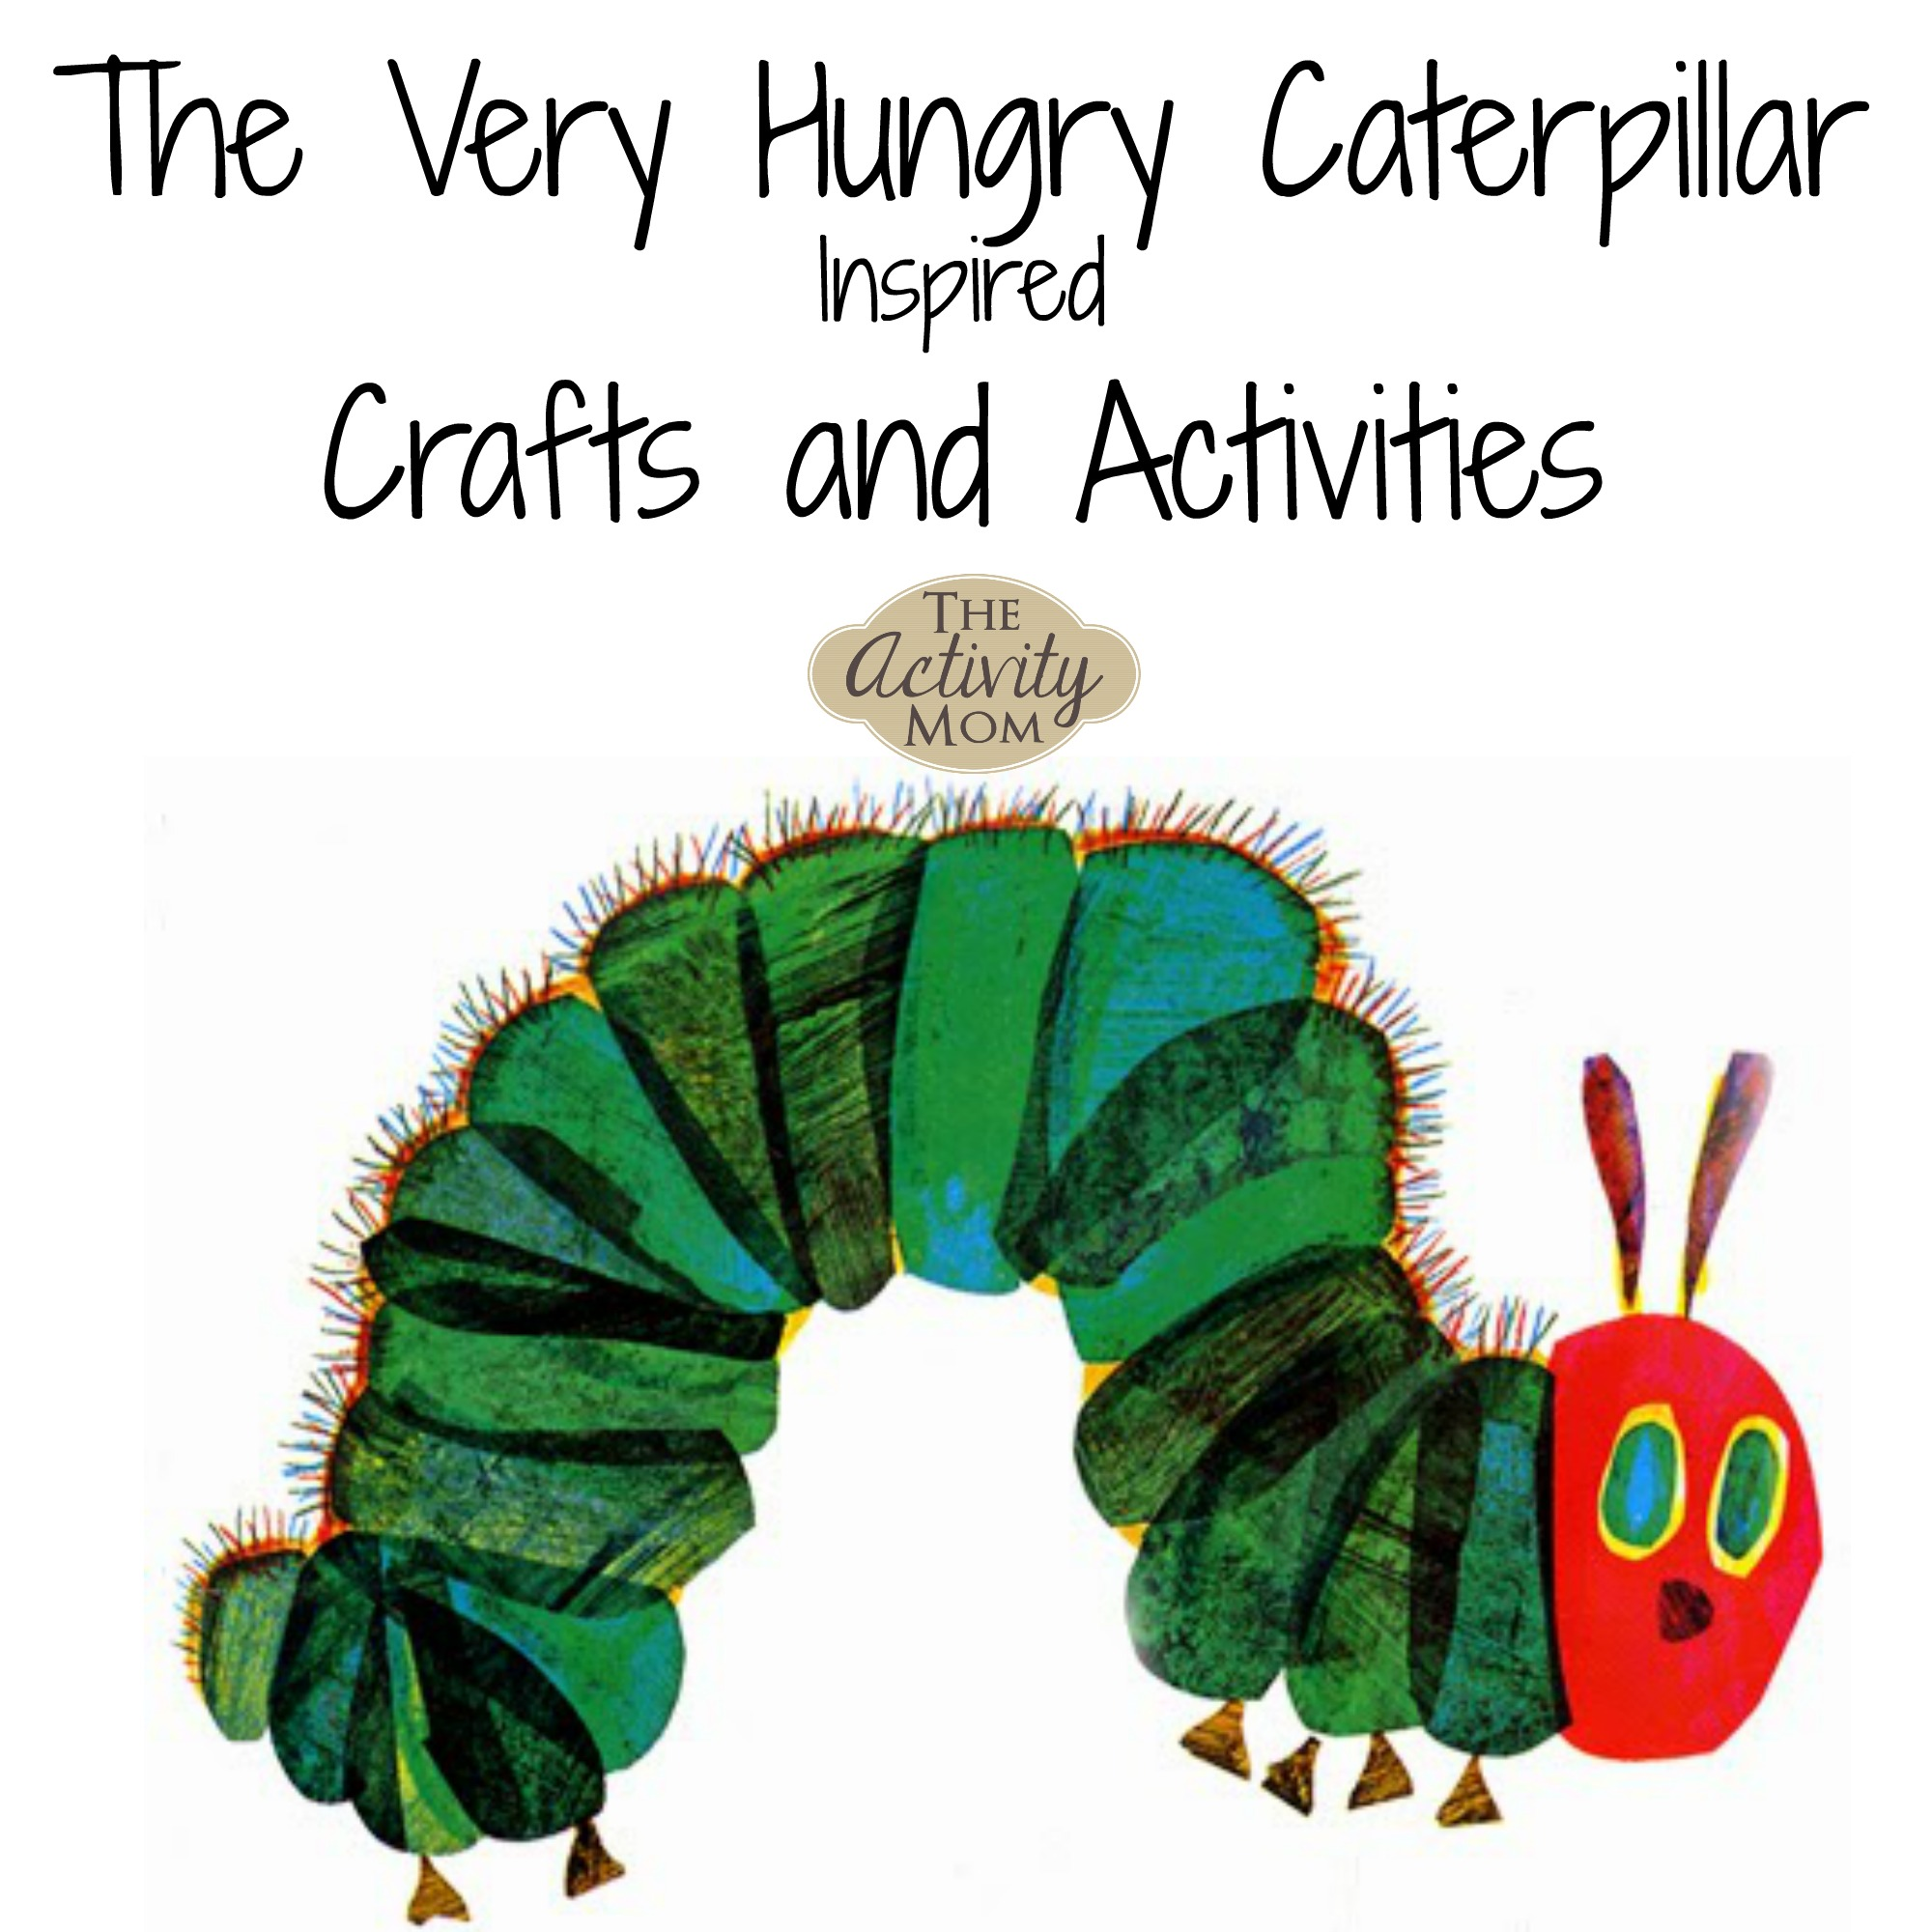 image relating to Very Hungry Caterpillar Printable Activities known as The Match Mother - Fairly Hungry Caterpillar Crafts and